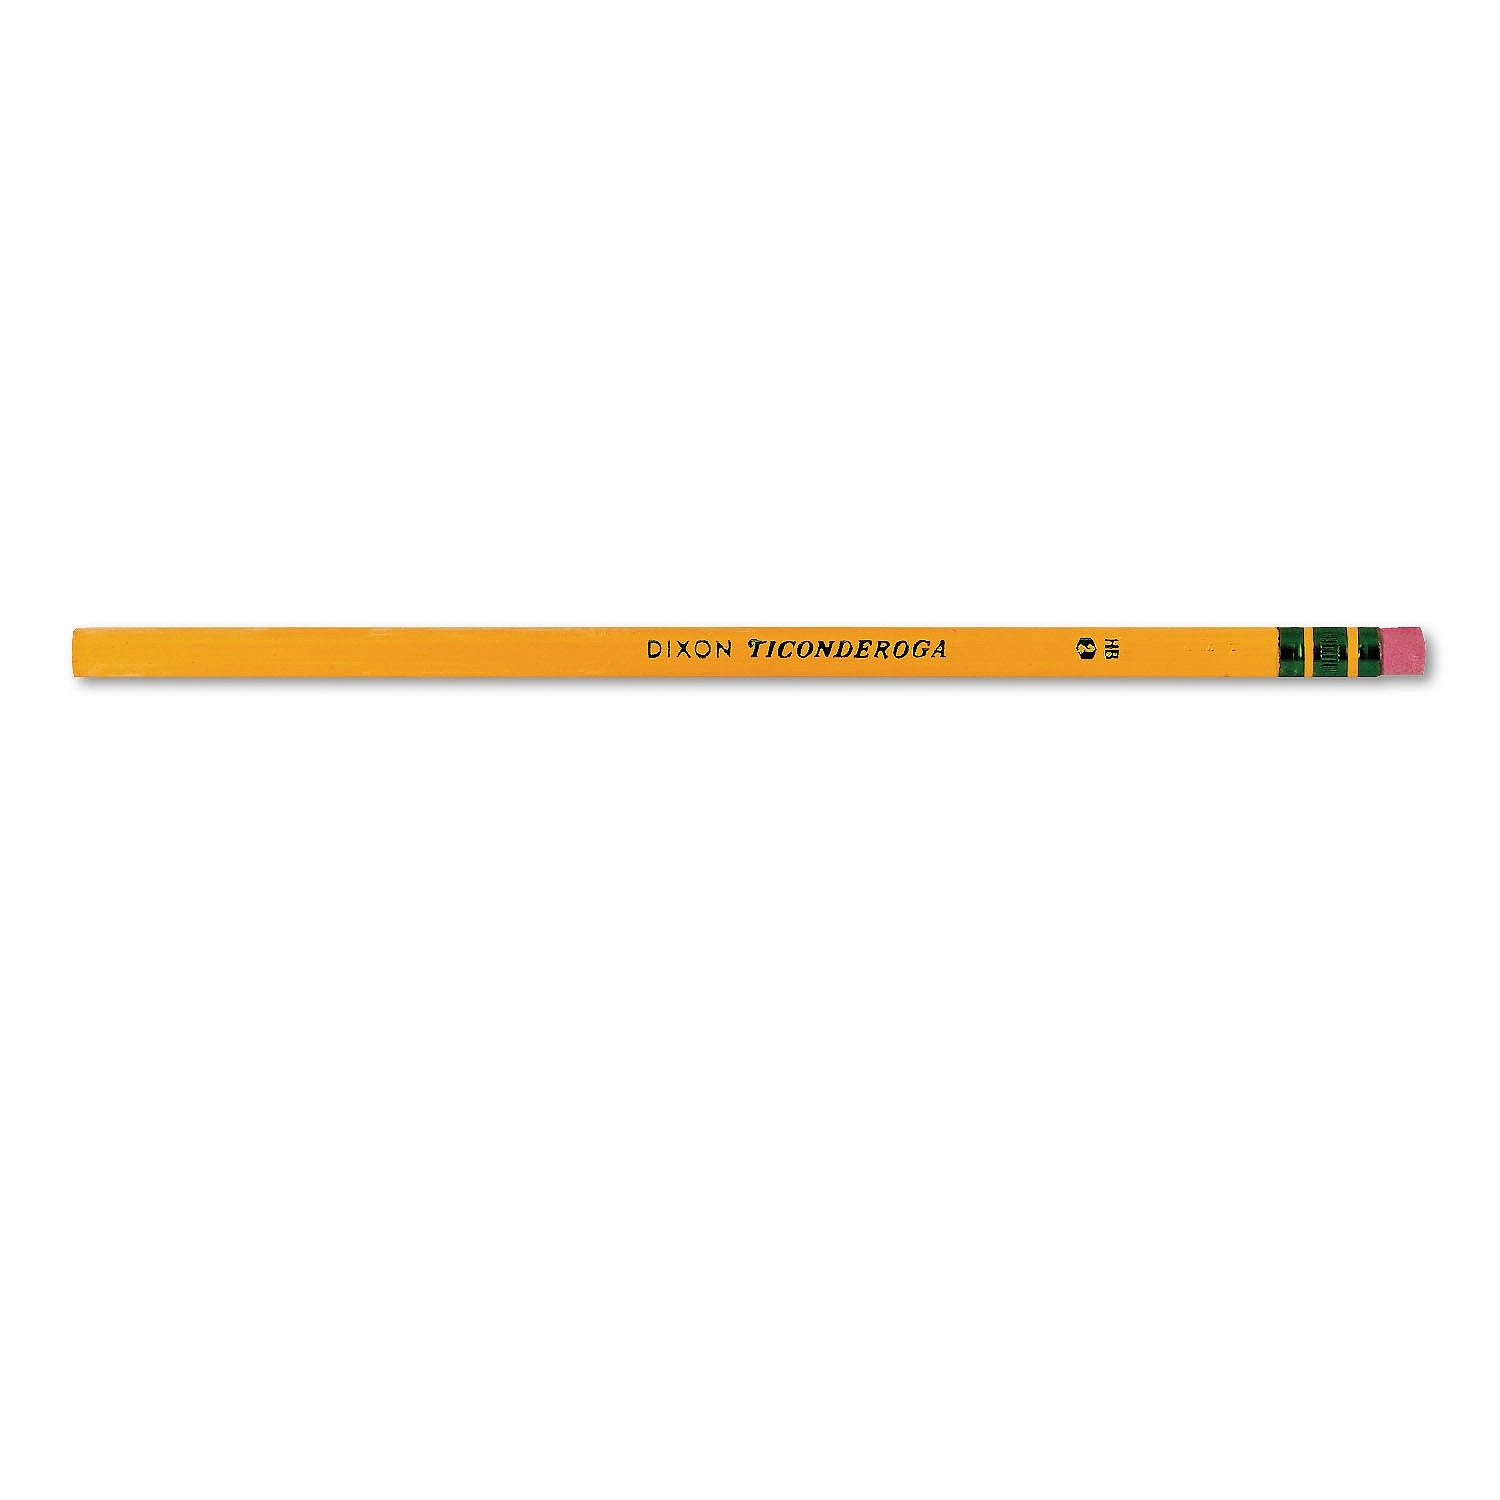 Dixon Ticonderoga Woodcase Pencil, HB #2, Yellow Barrel, 96/Pack (5 Pack) by Dixon (Image #4)